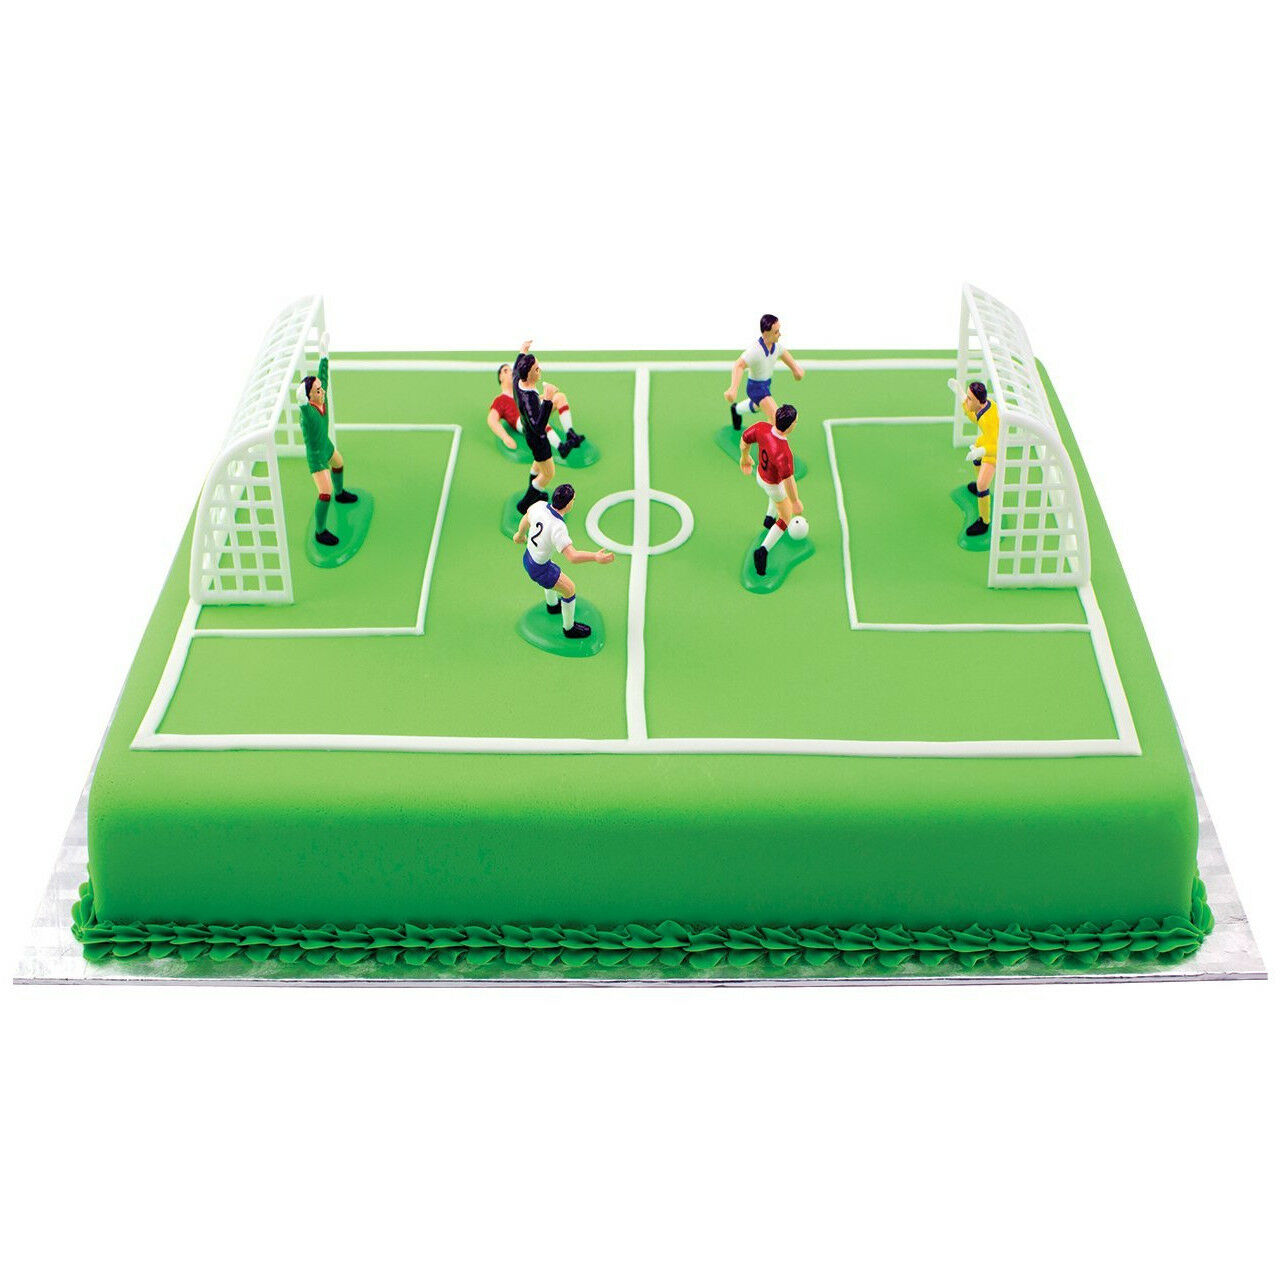 Pme Soccer Football Cake Topper Decorations Birthday Cake Decorating